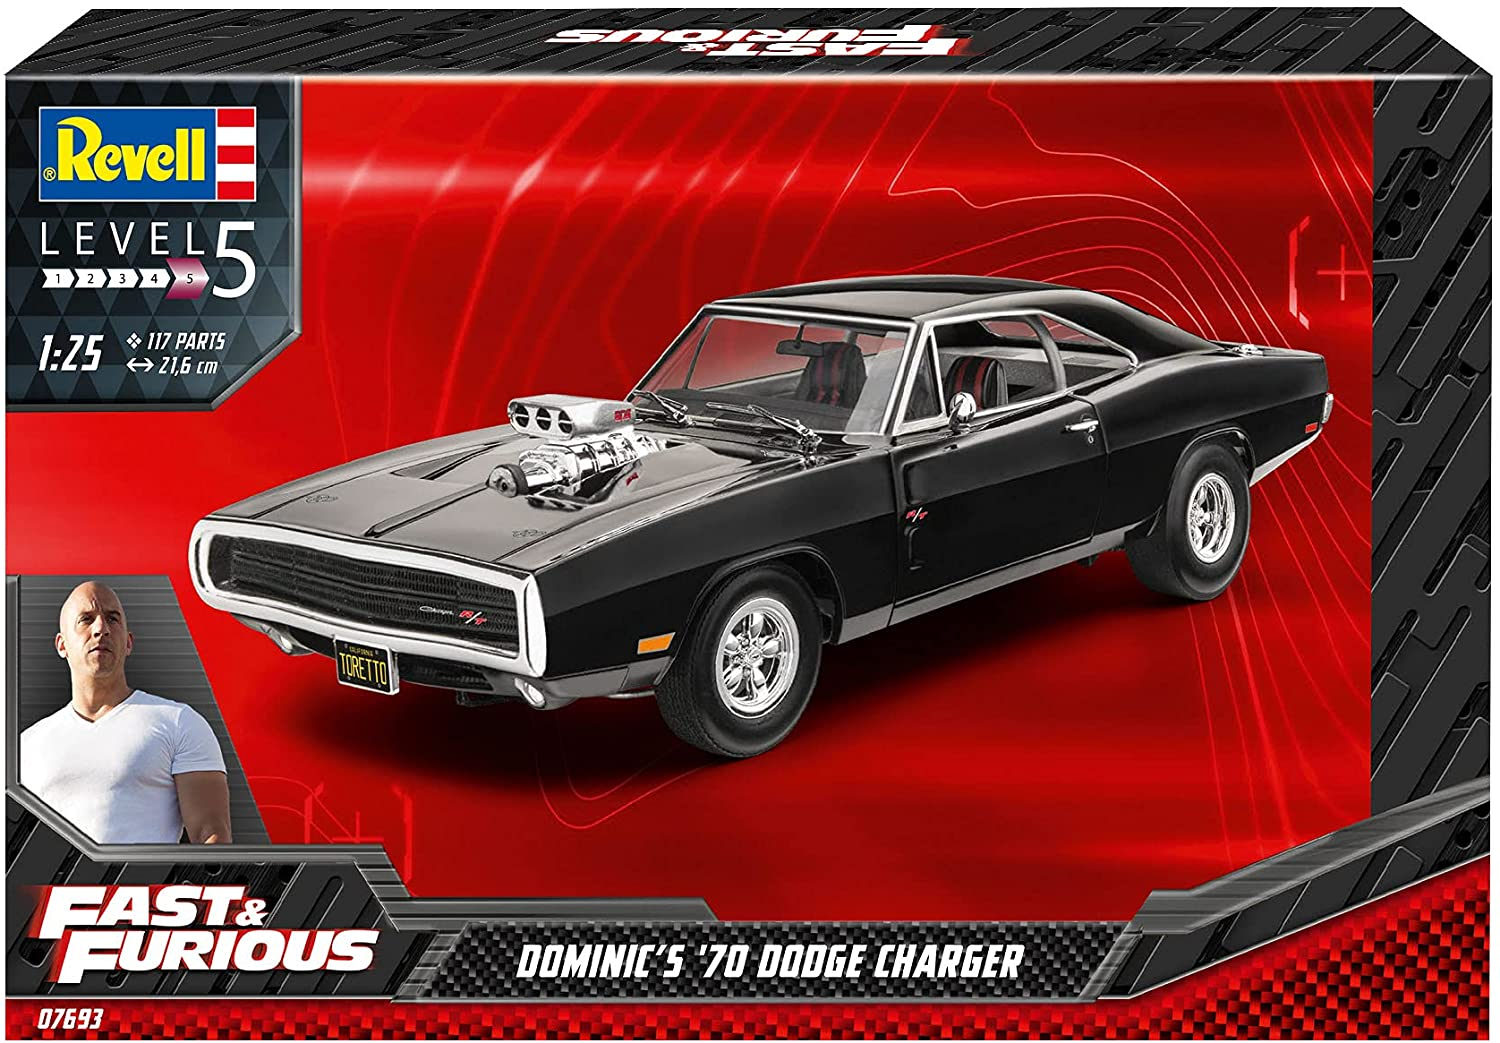 1/25 Fast & Furious - Dominic's 1970 Dodge Charger